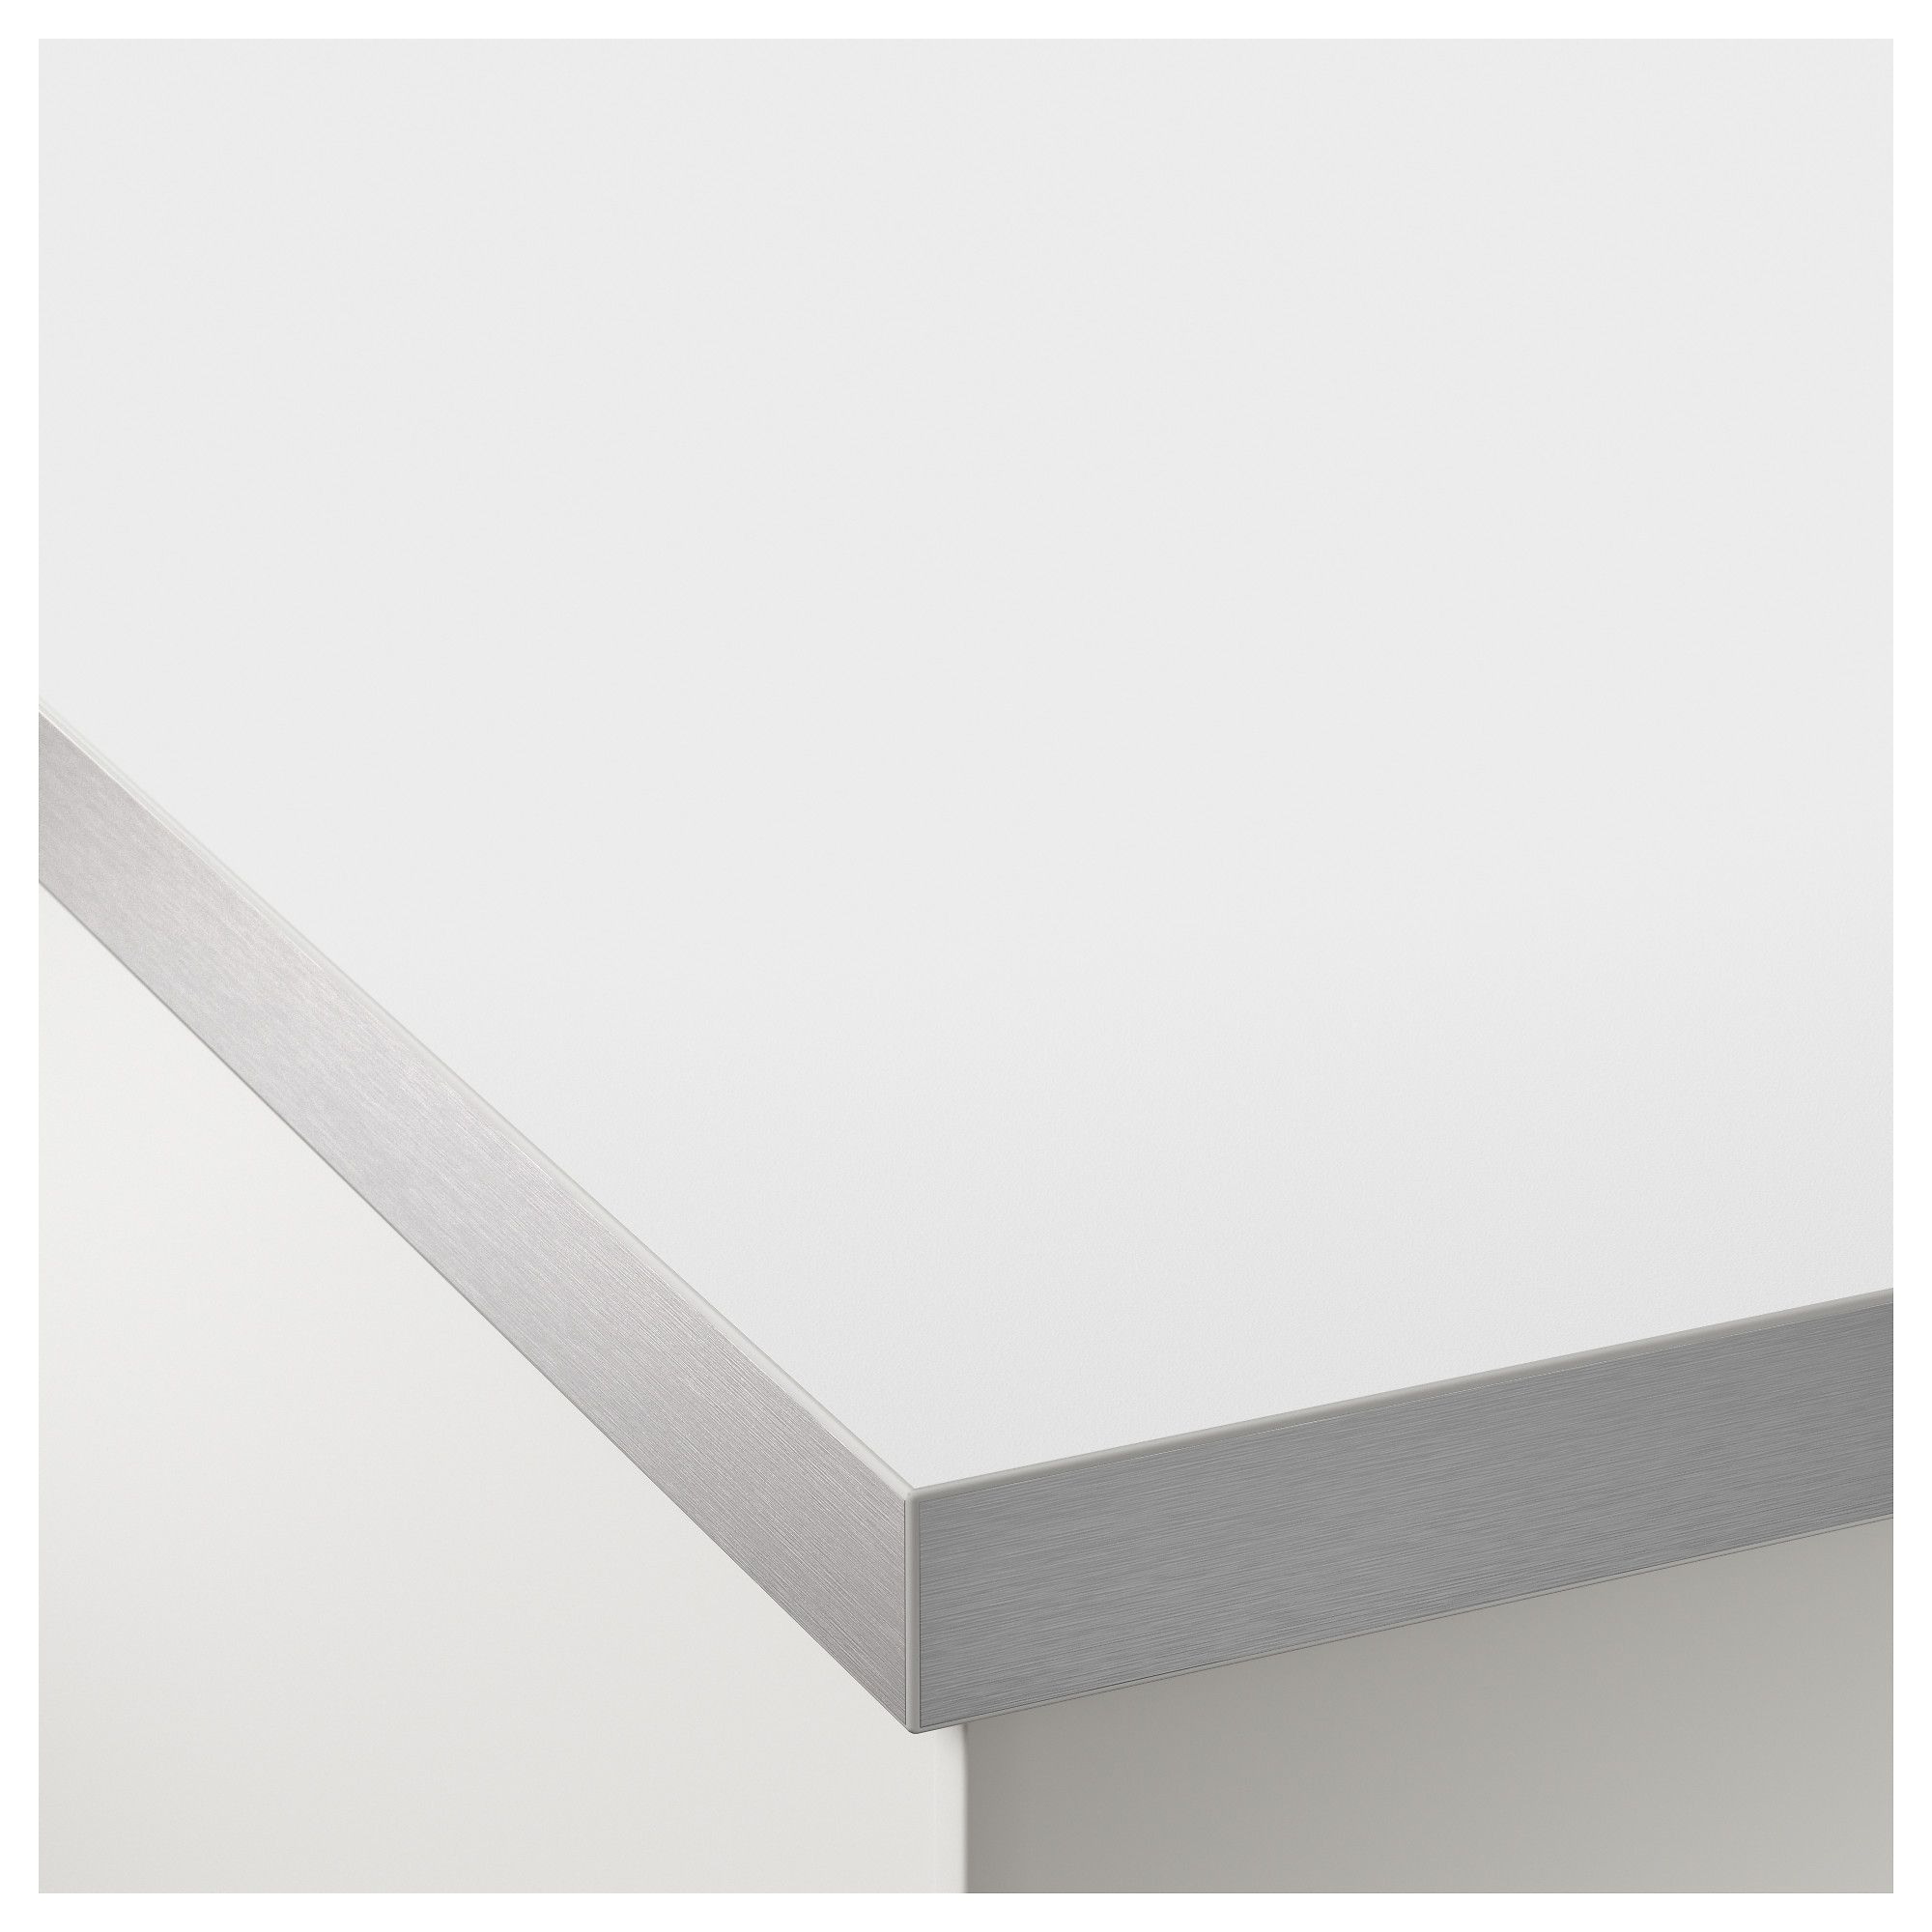 Hallestad Countertop Double Sided White Aluminum Effect Aluminum Effect Metal Effect Edge With Metal Effect Edge Laminate 98x1 1 2 249x3 8 Cm Pool Accessories Diving Board Laminate Countertops